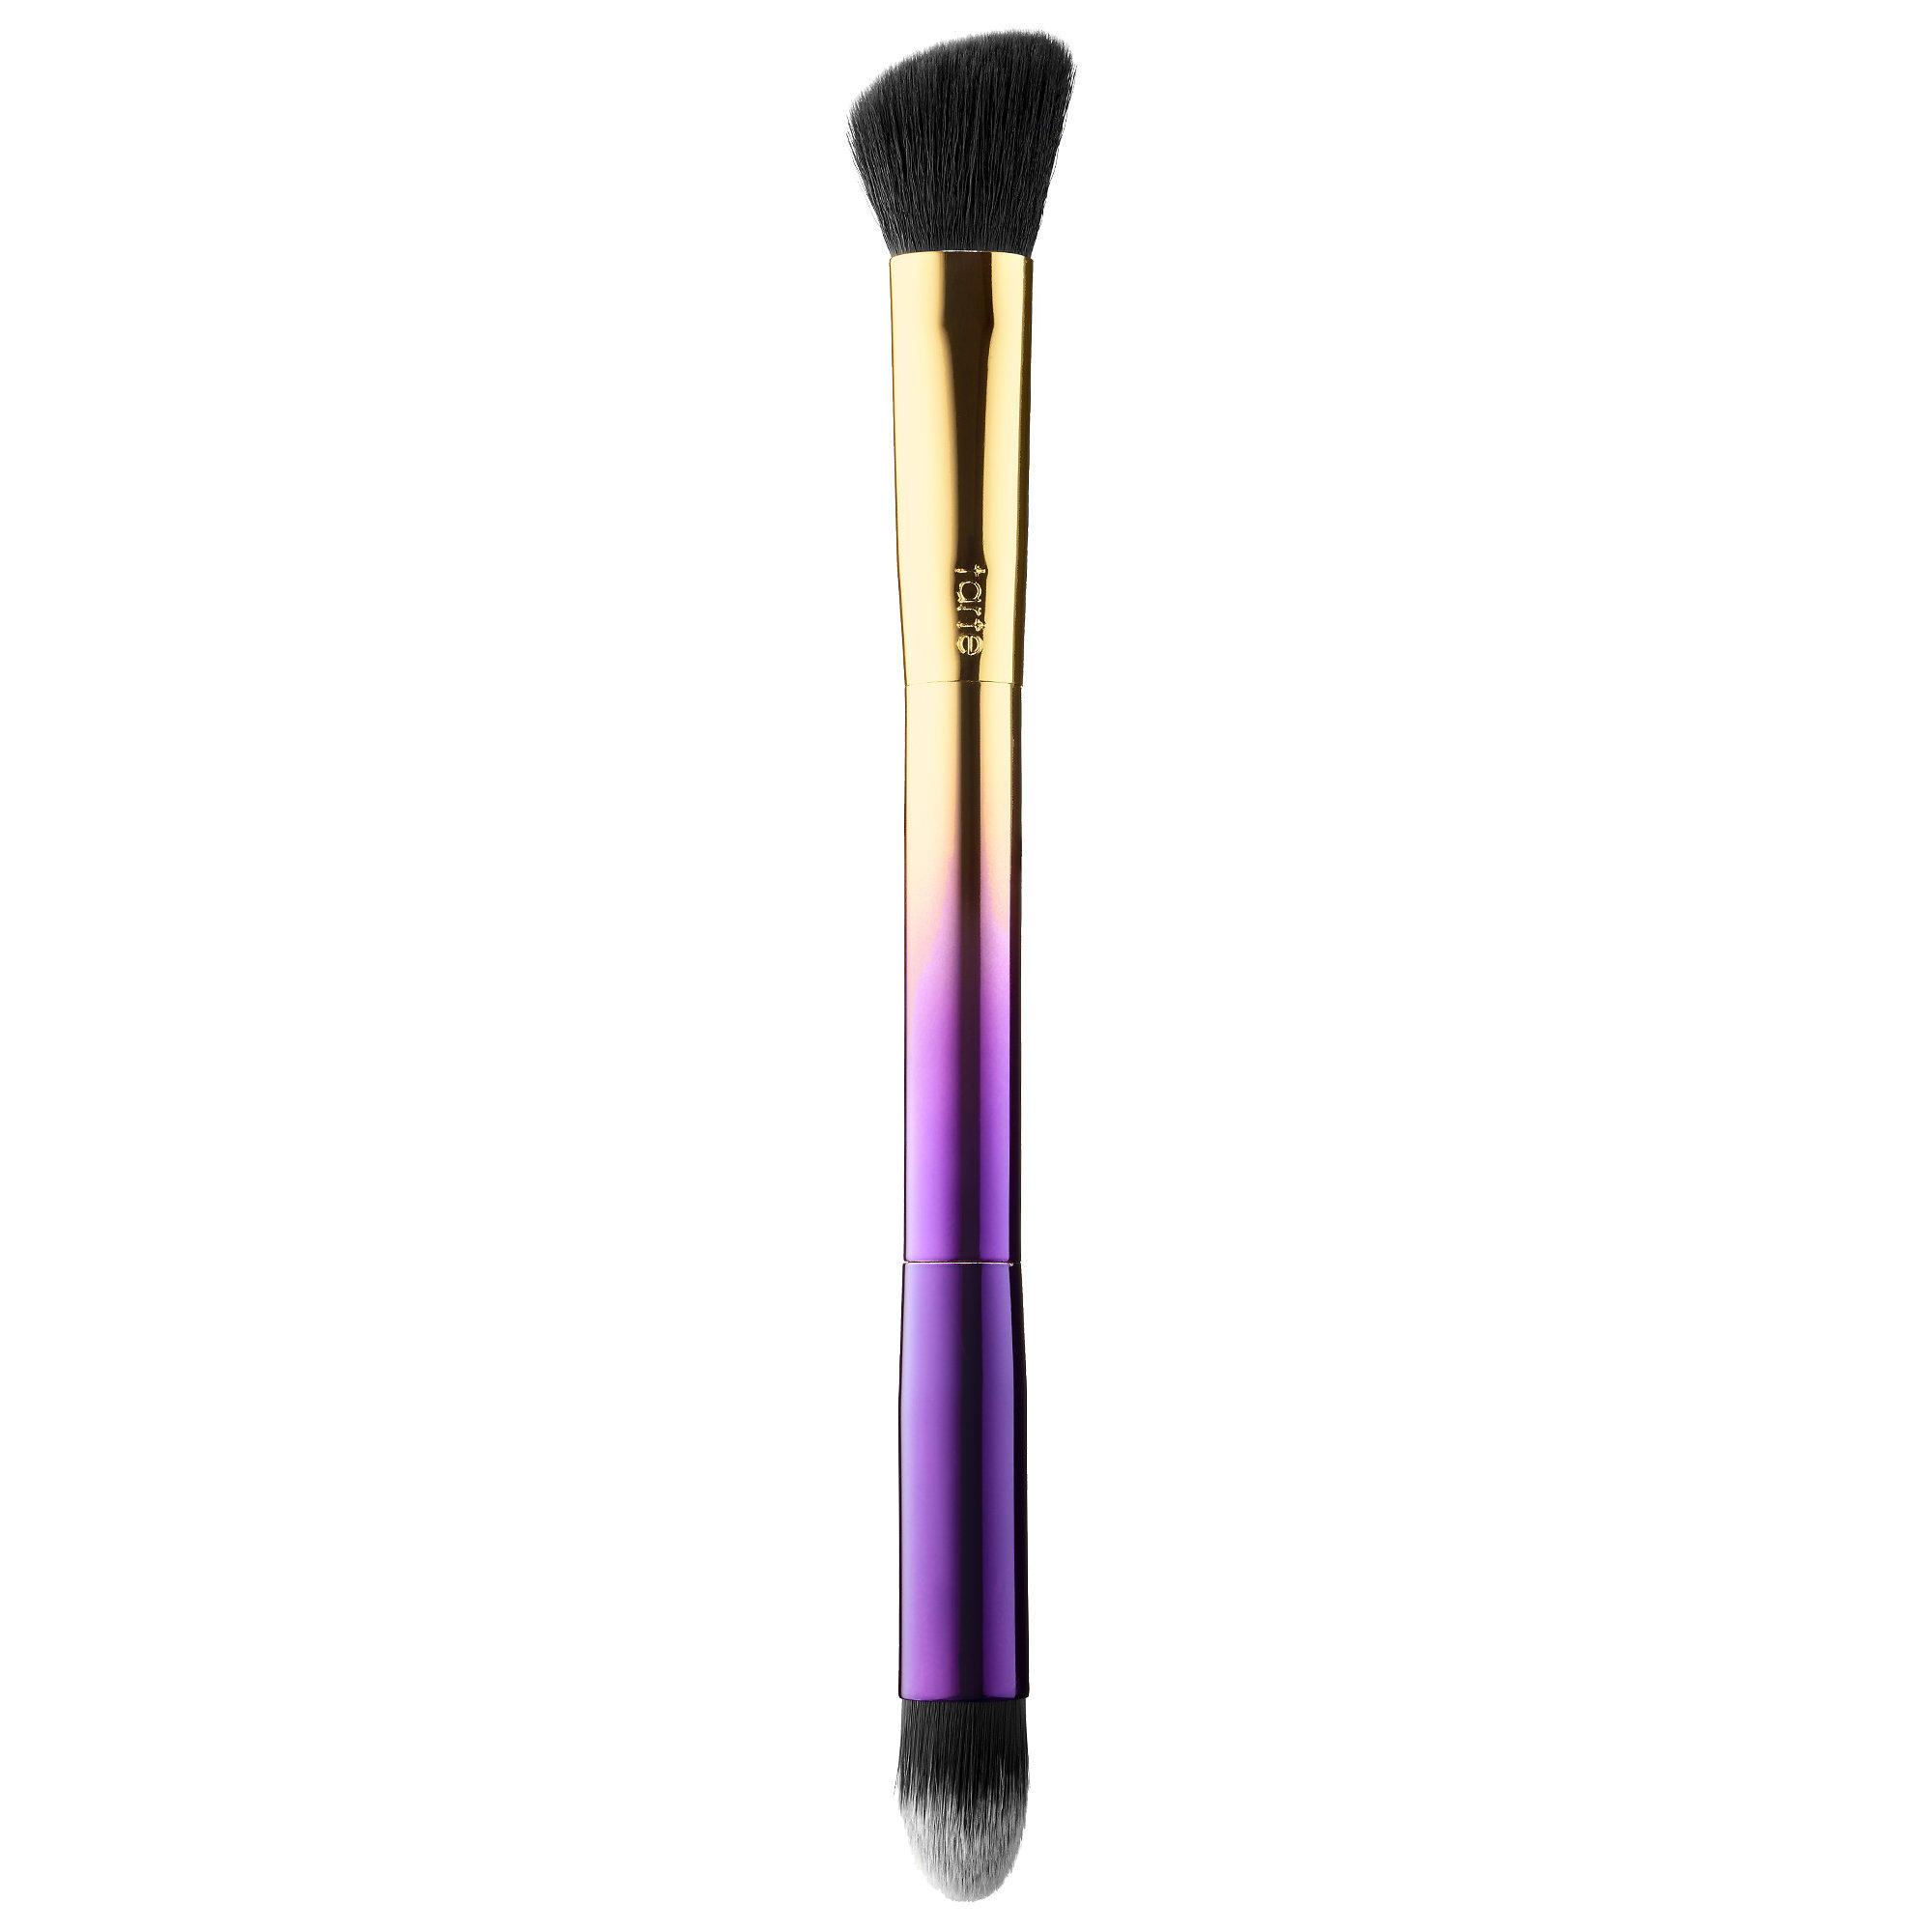 Tarte Rainforest Of The Sea Color Correcting Brush